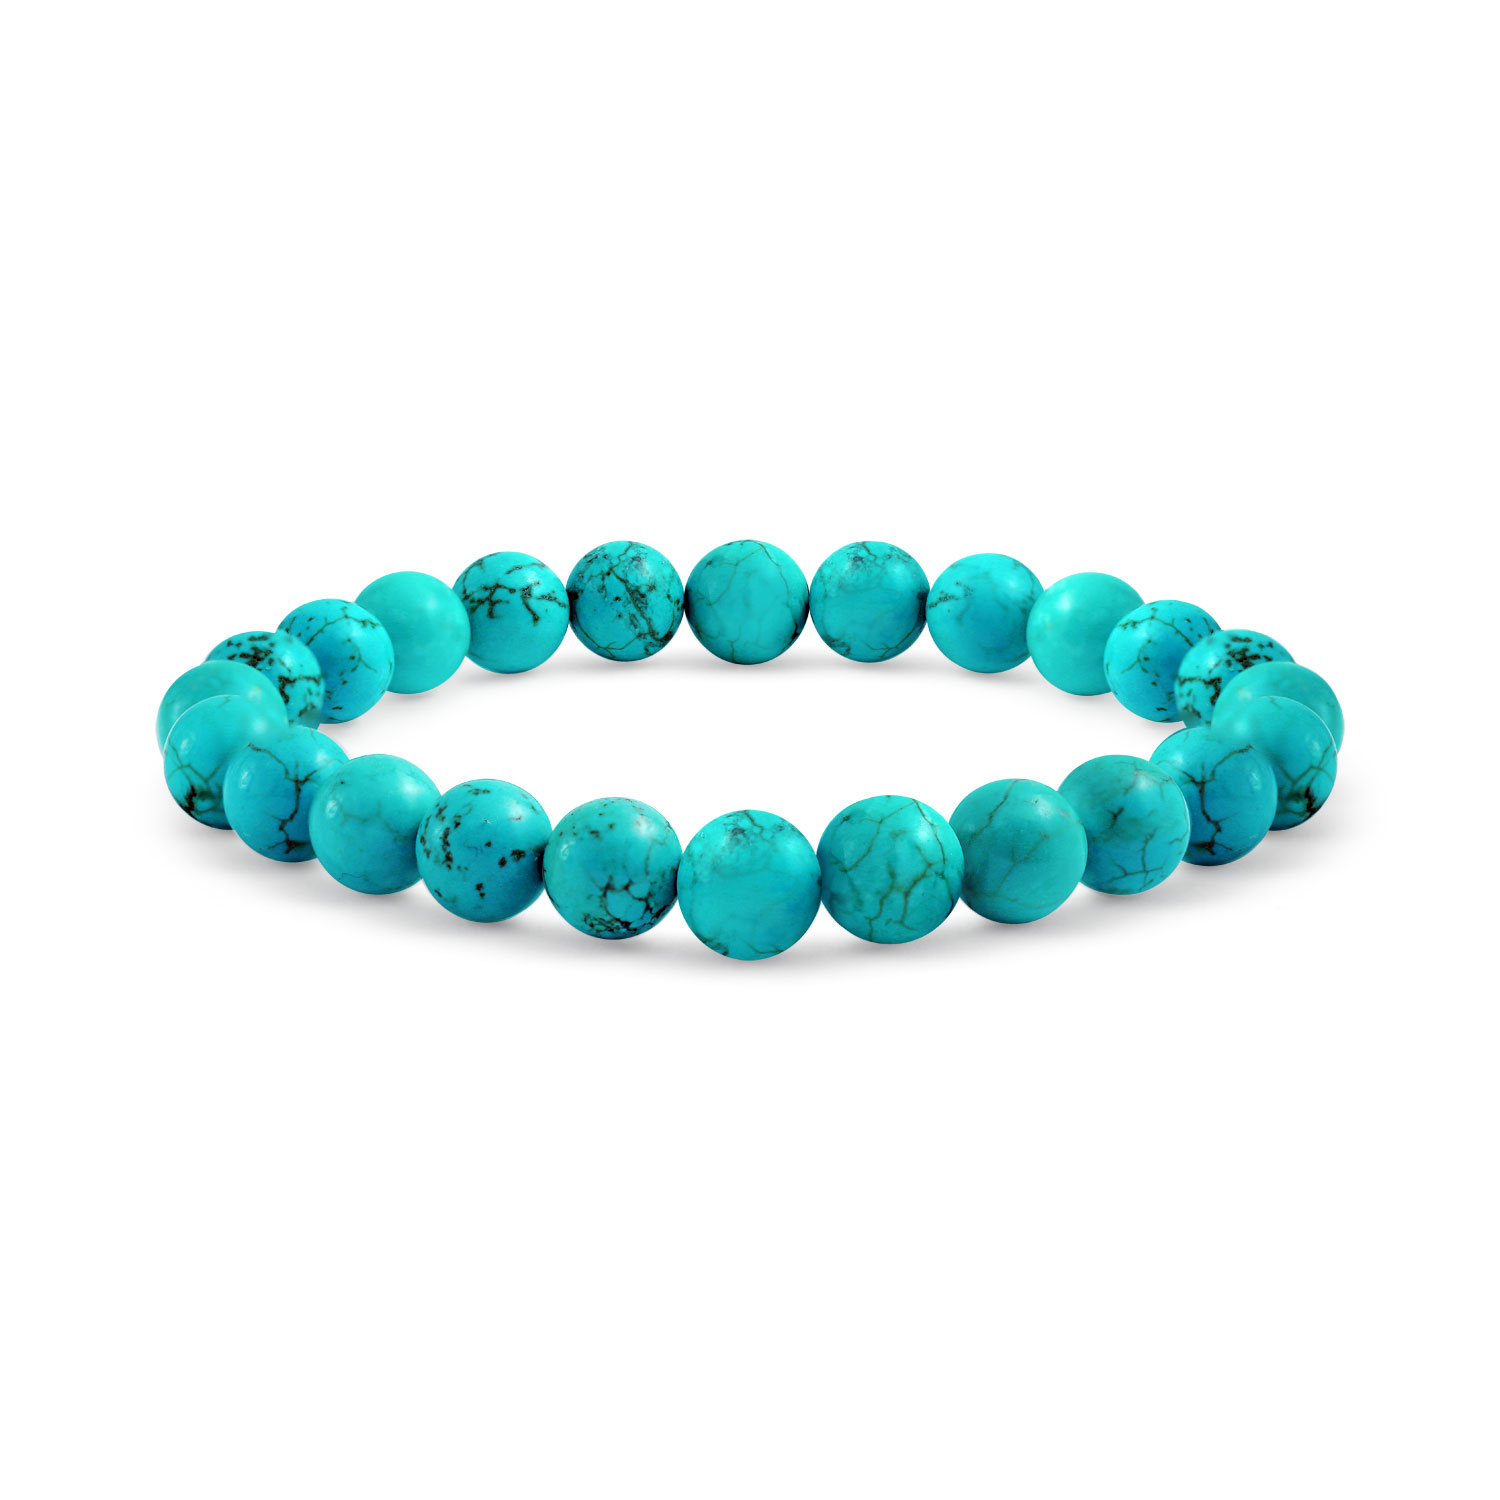 Enhanced Turquoise 8mm Ball Bead Stones Stackable Single Strand Stretch Bracelet For Women S